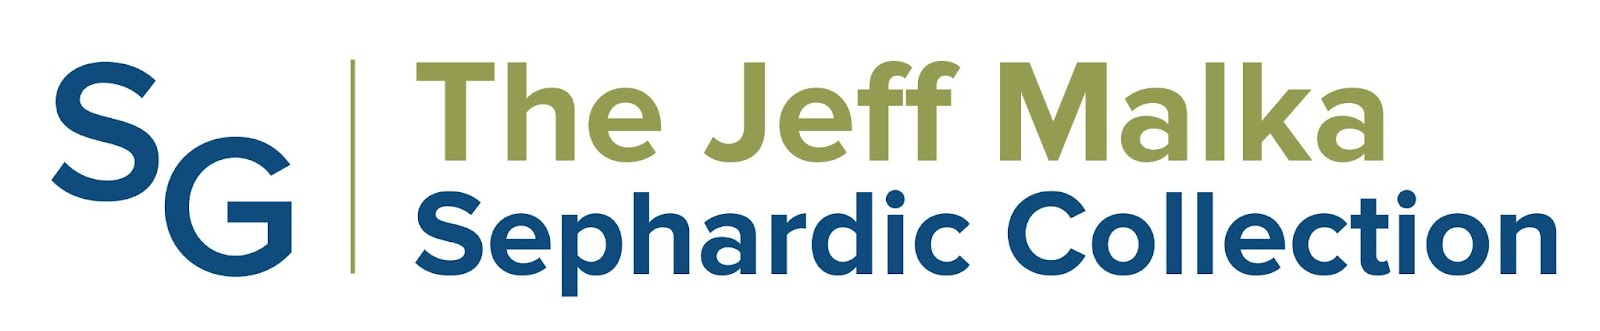 JeffMalka Collection